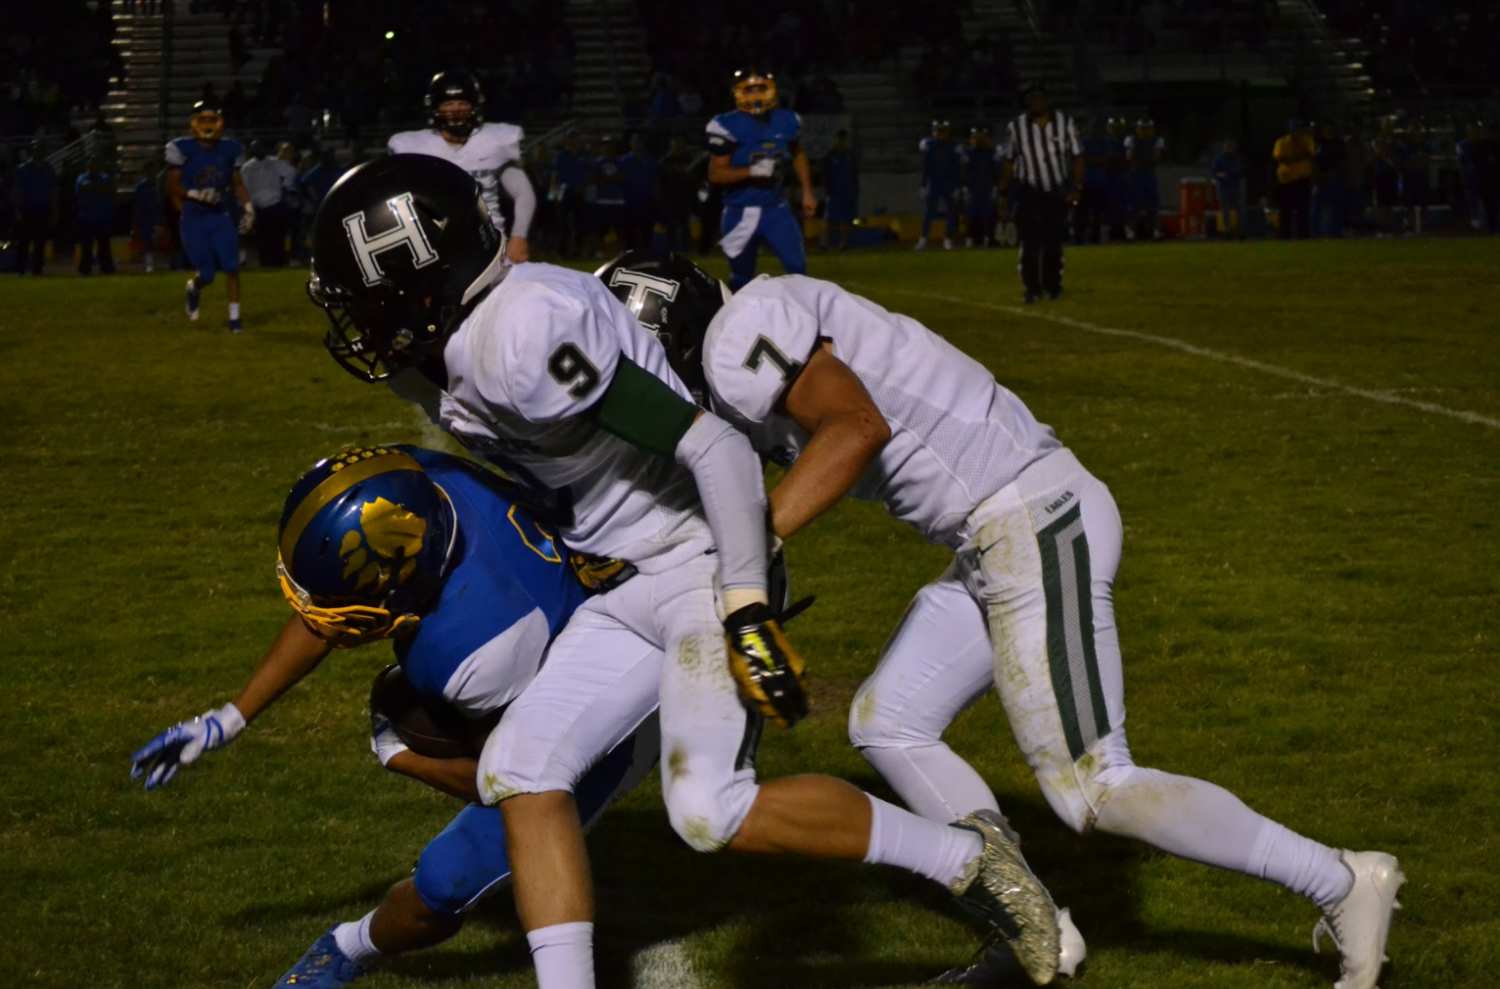 Anthony Contreras (12) and Jared Anderson (11) tackle a Santa Clara player running the ball. Both Anthony and Jared scored touchdowns during the first half of the game.